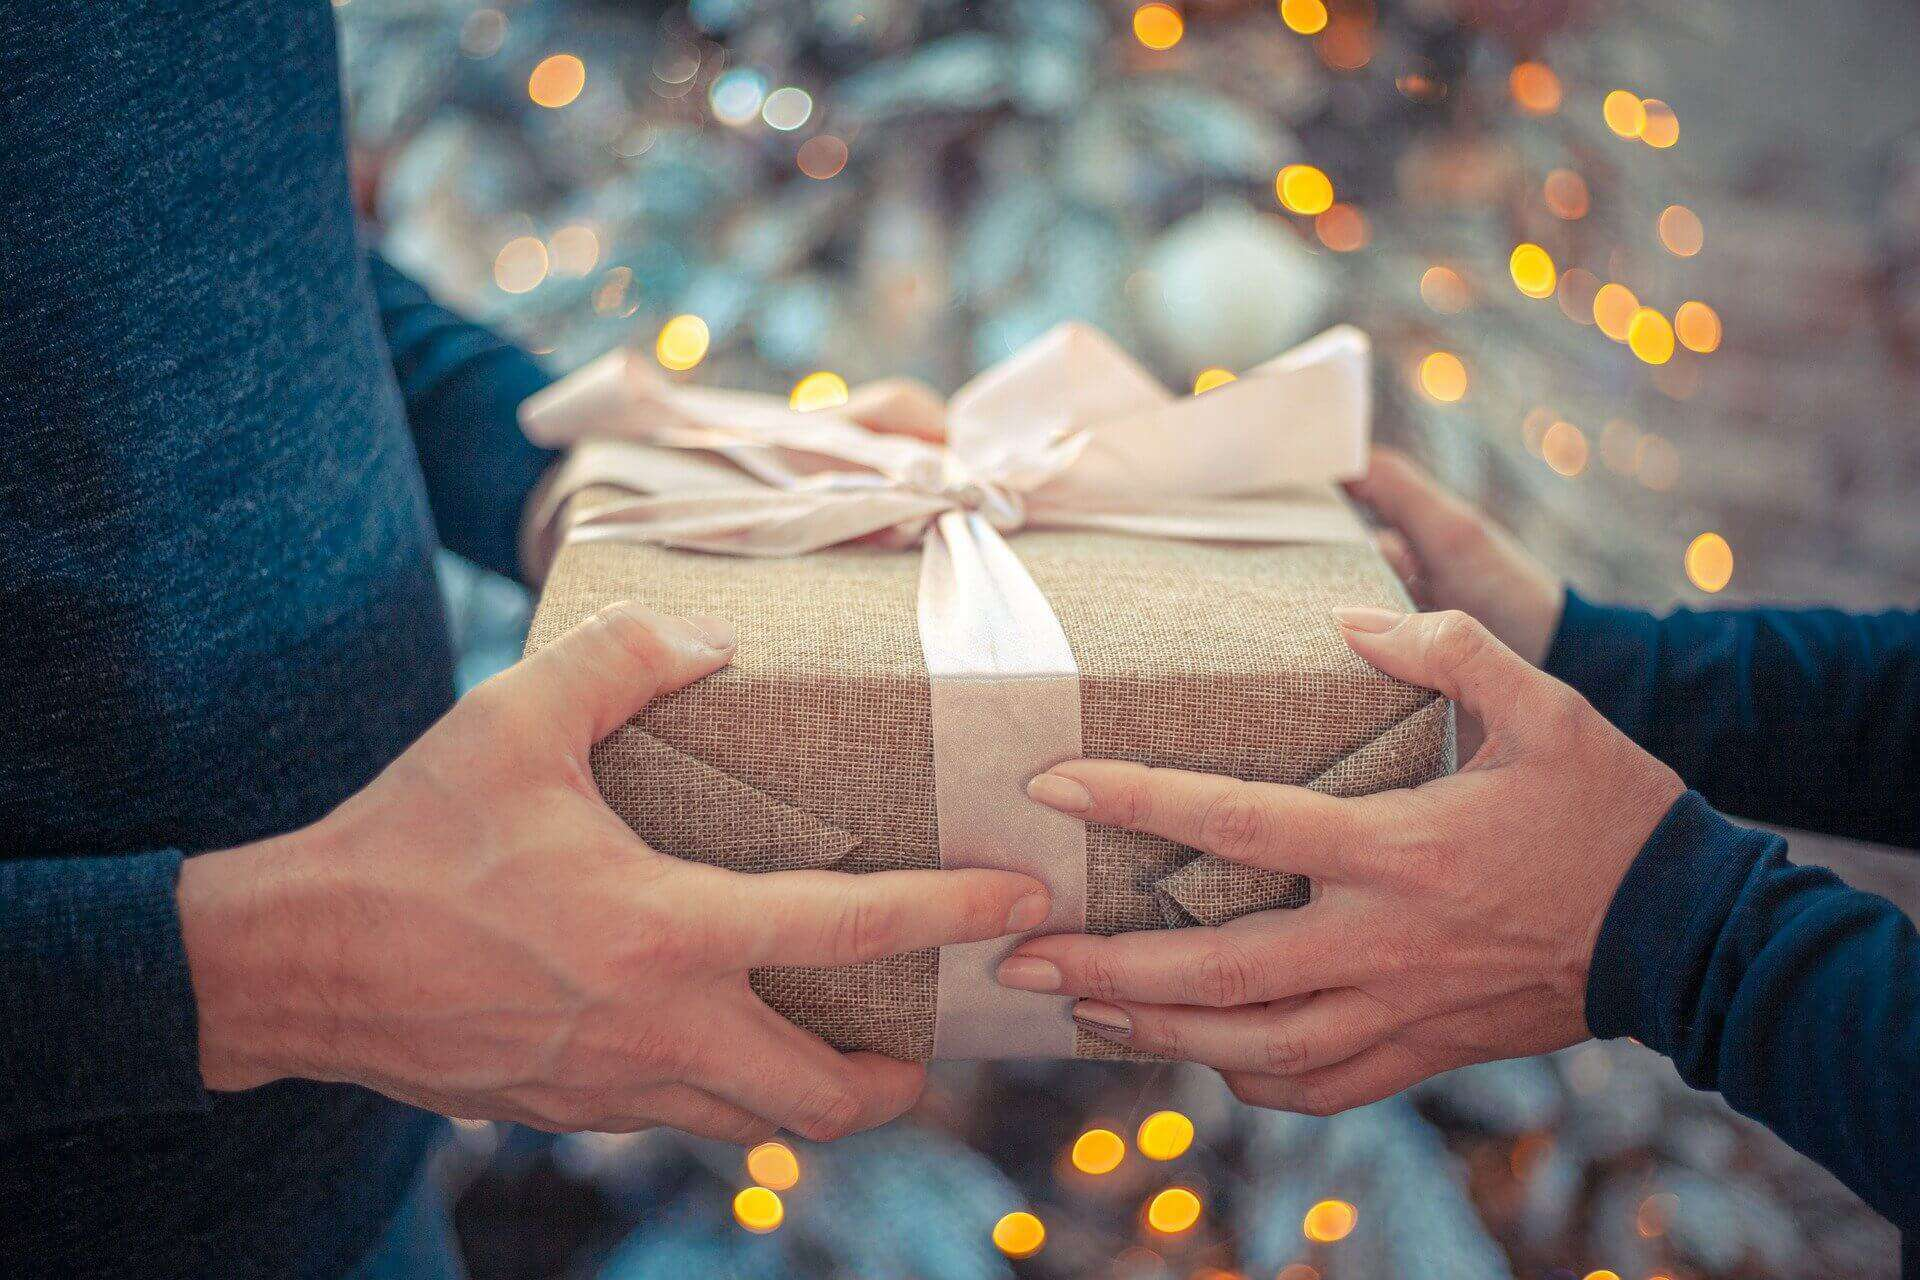 A woman is giving a brown gift box to a men